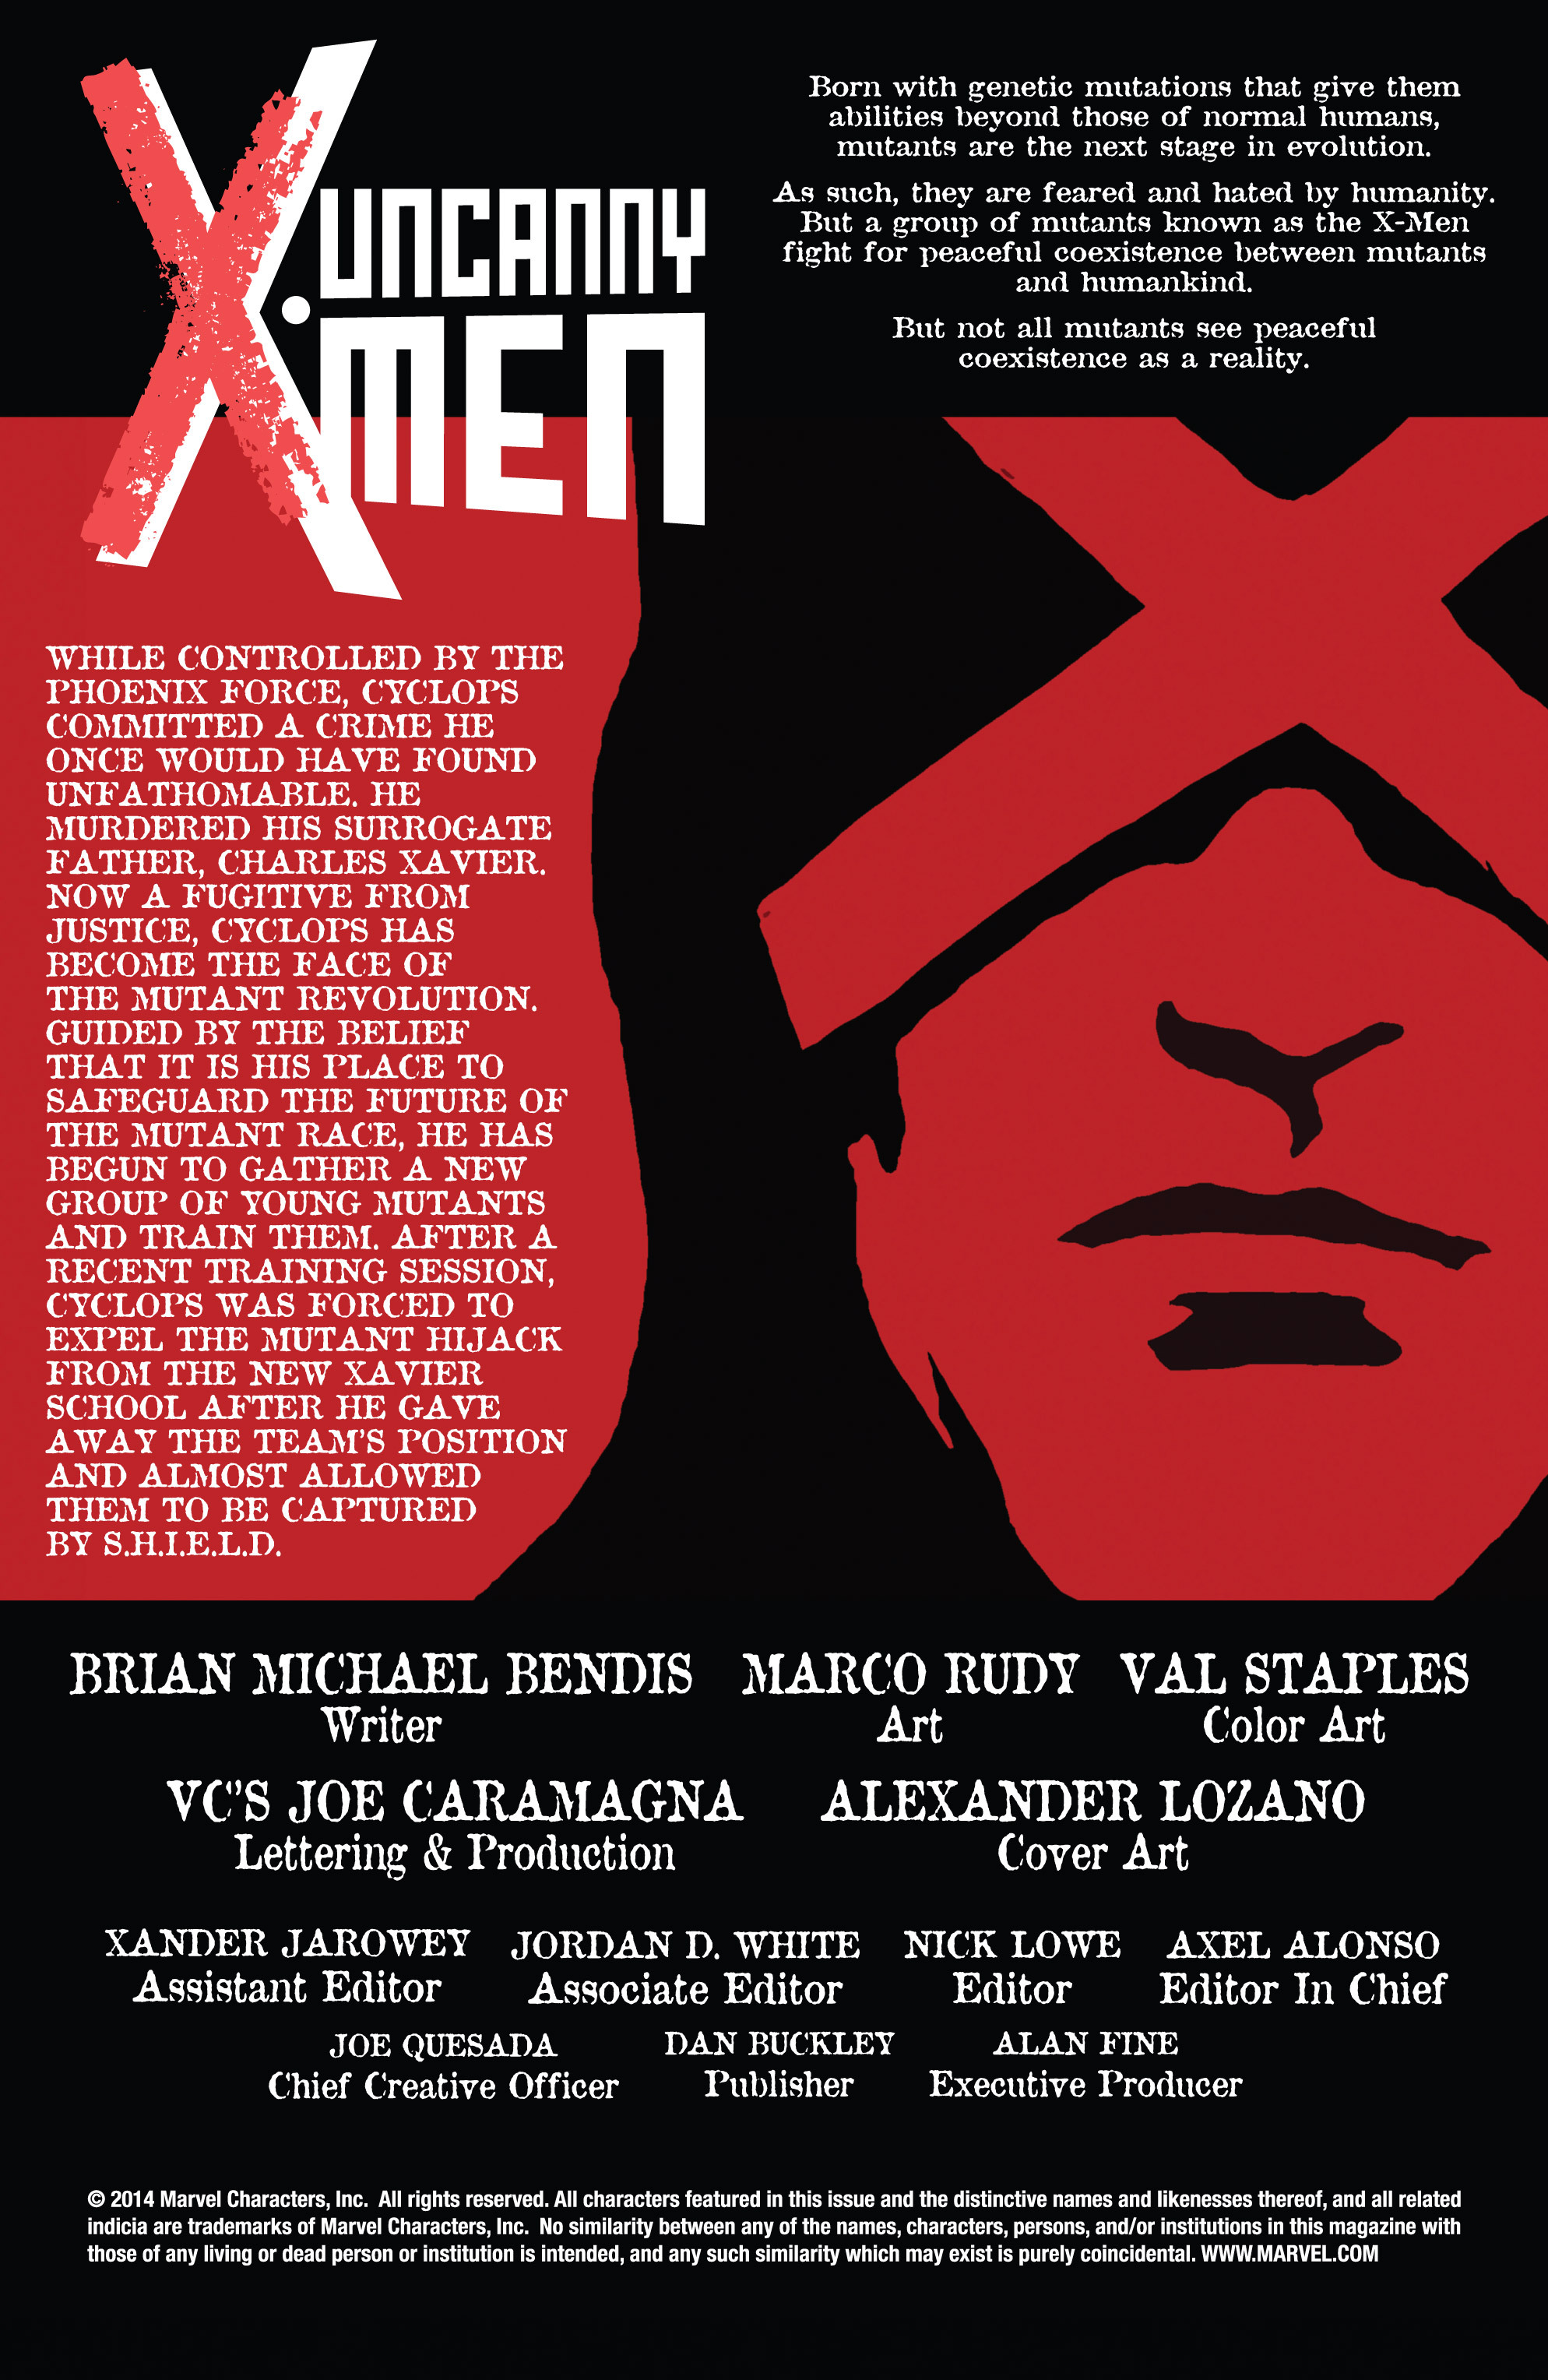 Read online Uncanny X-Men (2013) comic -  Issue # _TPB 3 - The Good, The Bad, The Inhuman - 86